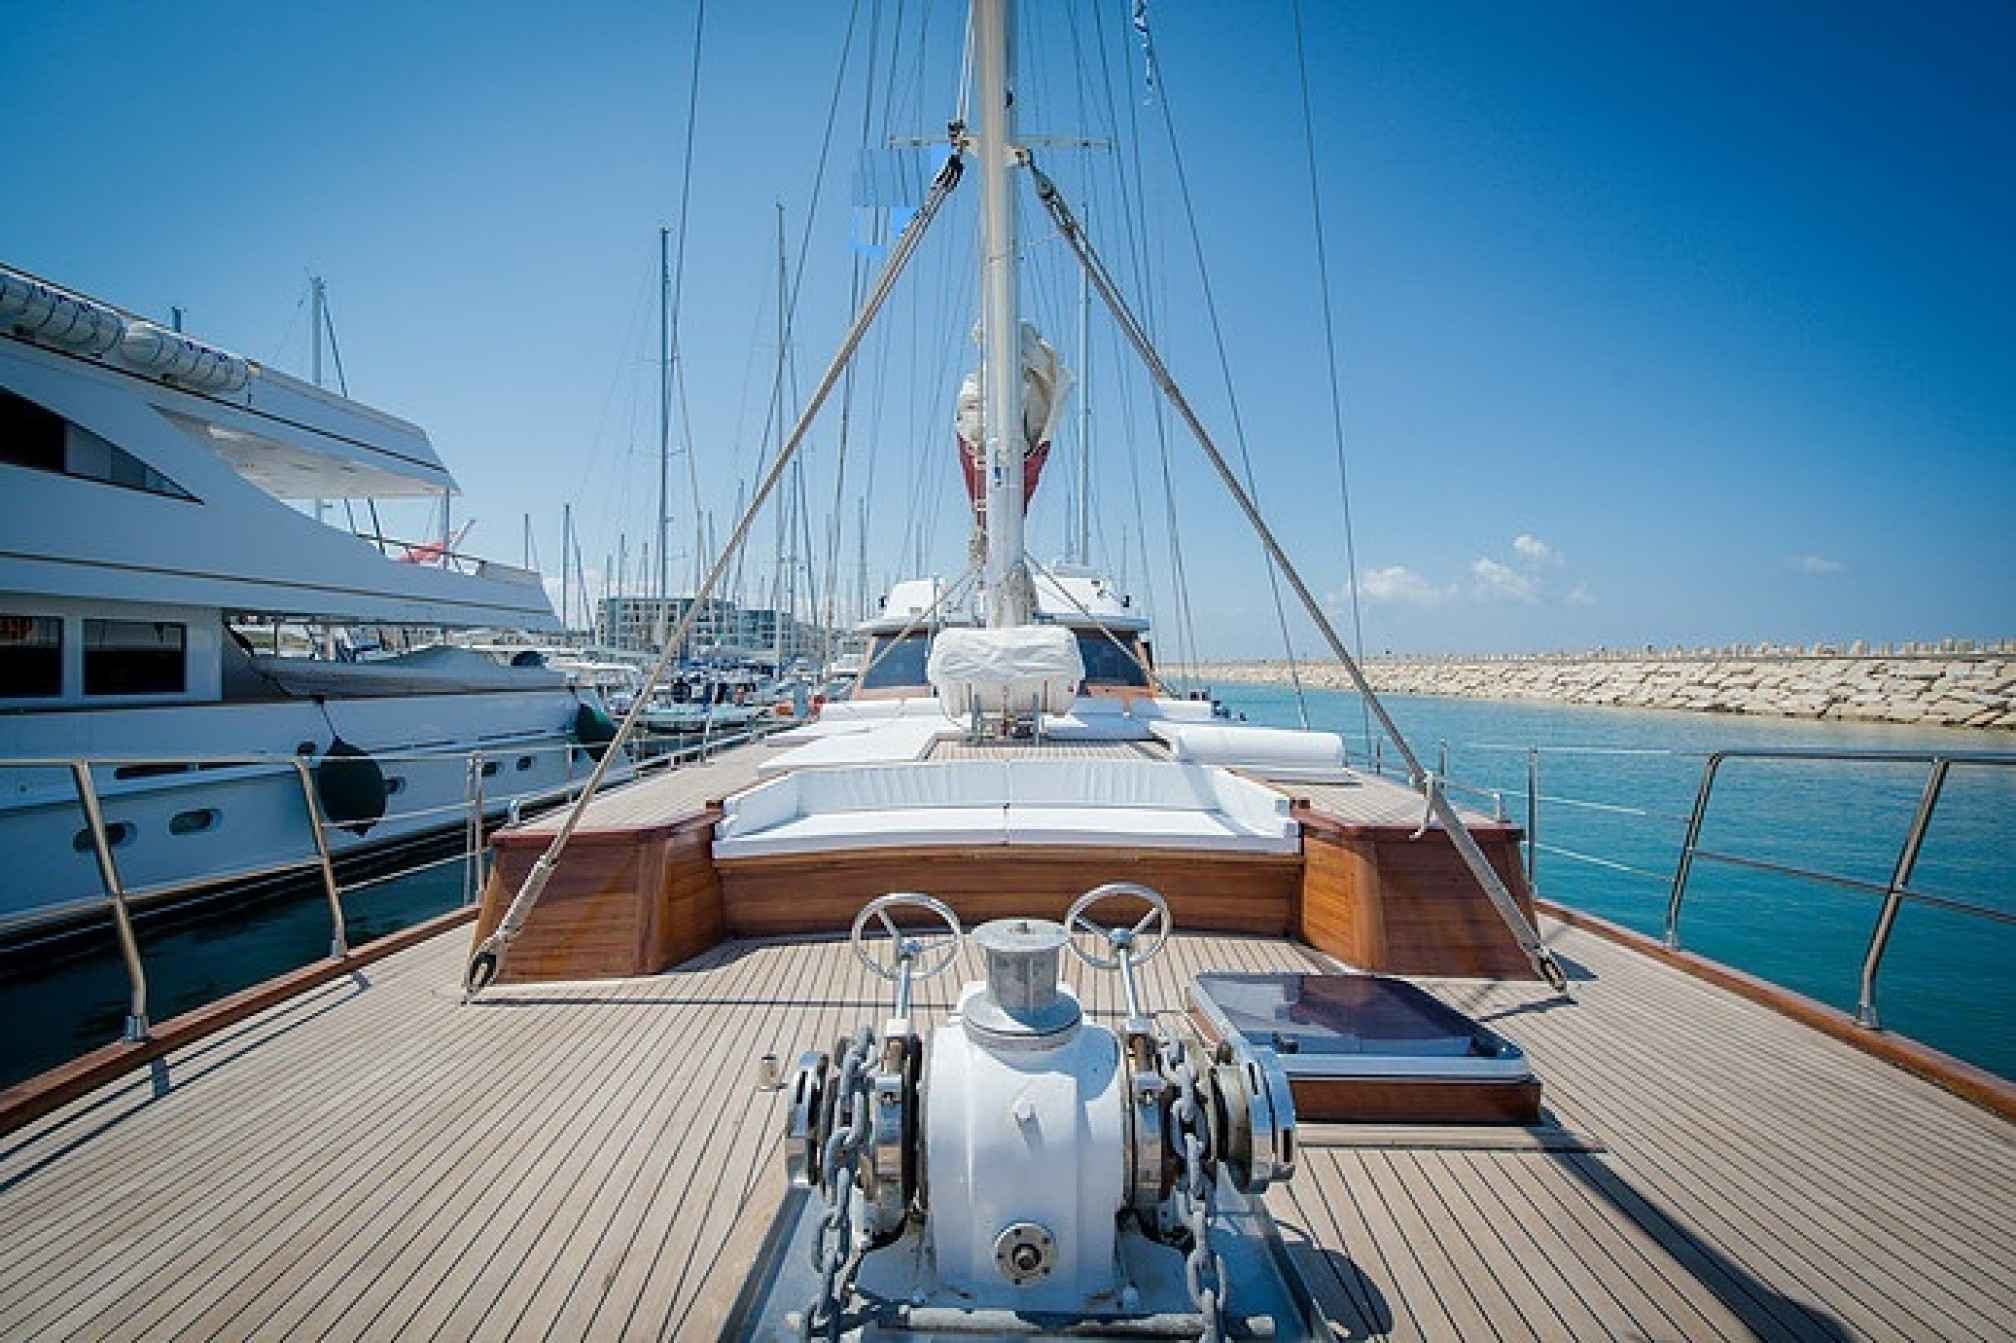 Adriatic Holiday gulet charter deck